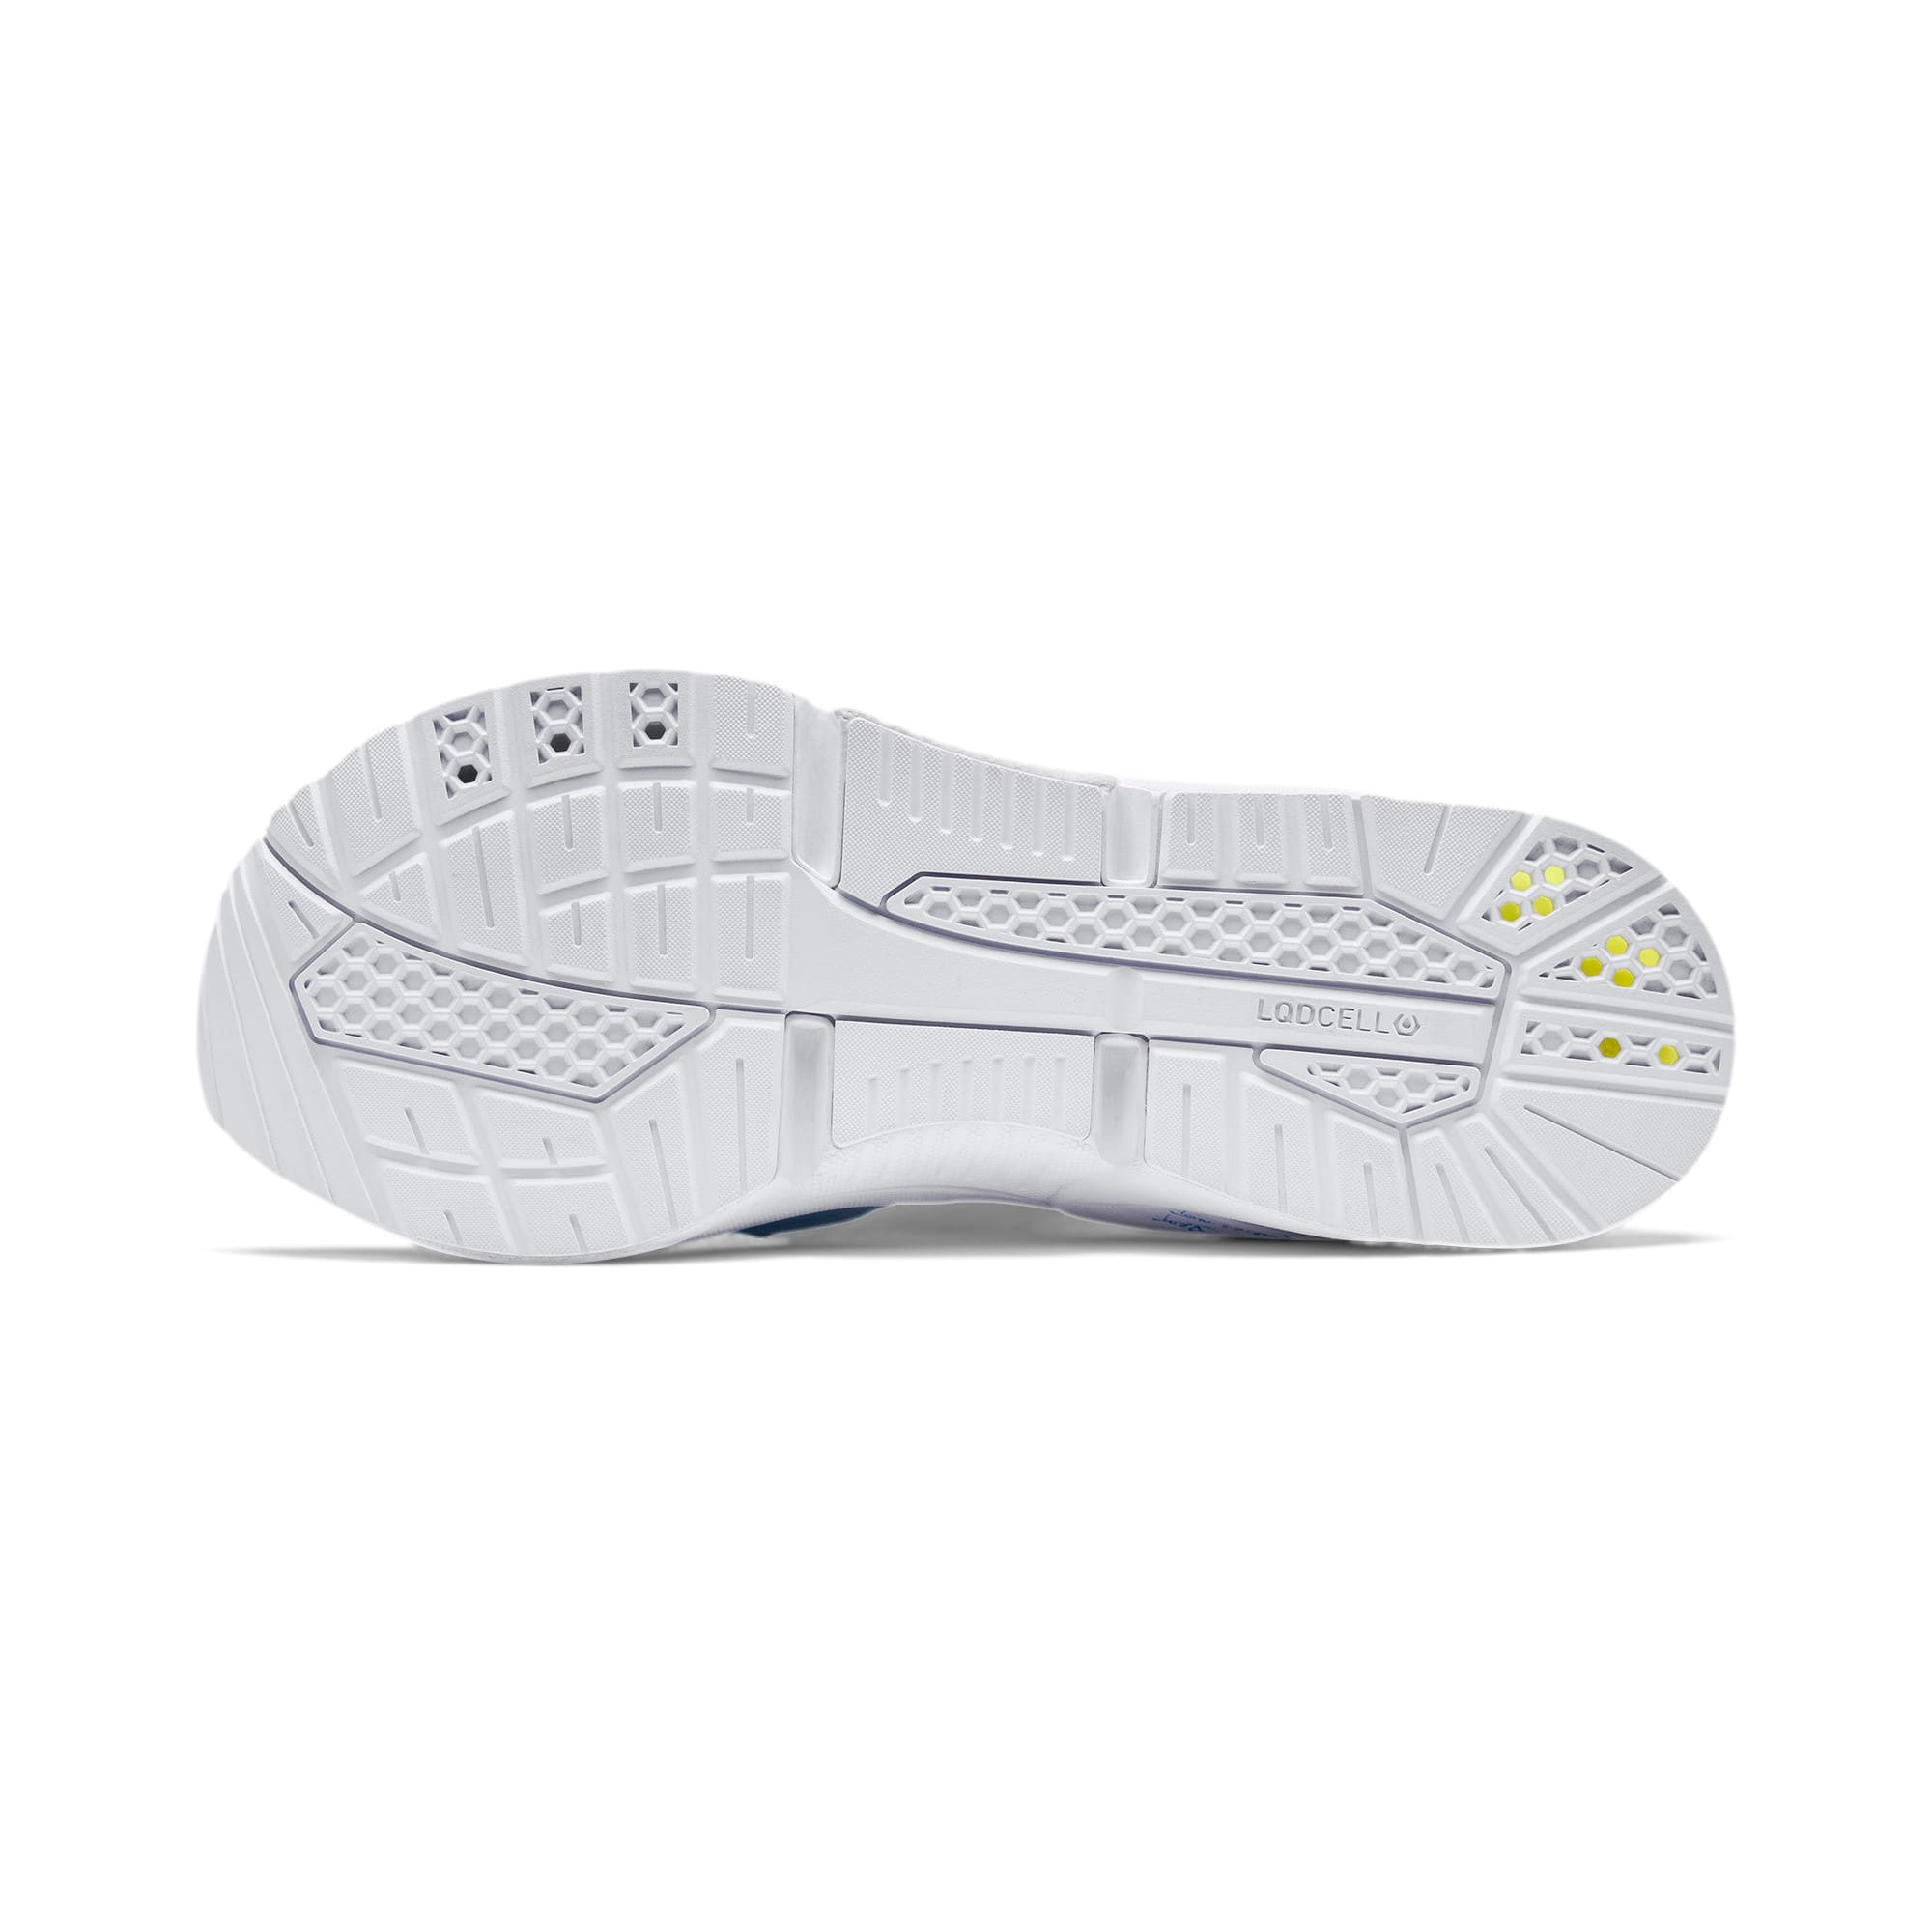 Thumbnail 6 of LQDCELL Optic Sheer Training Shoes, Puma White, medium-IND